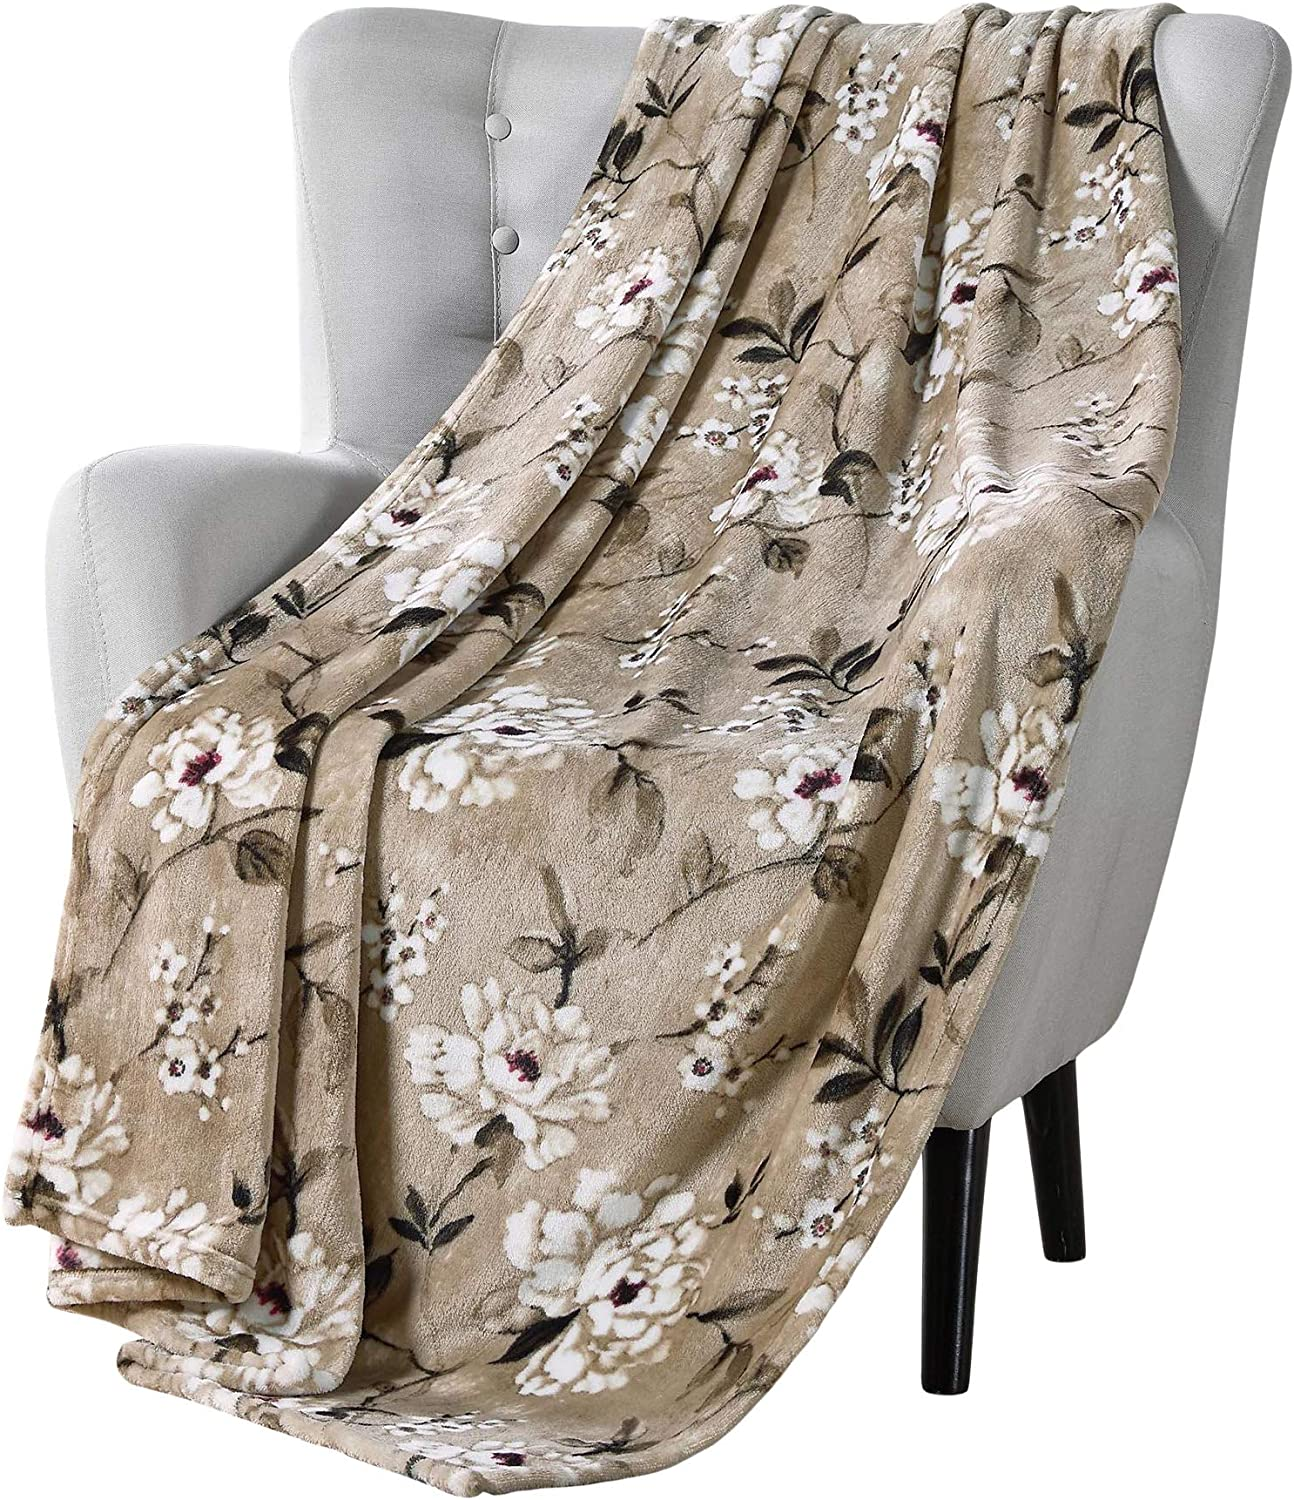 At the price of surprise Over item handling VCNY Decorative Throw Blanket: Cherry Design for Blossom Accent